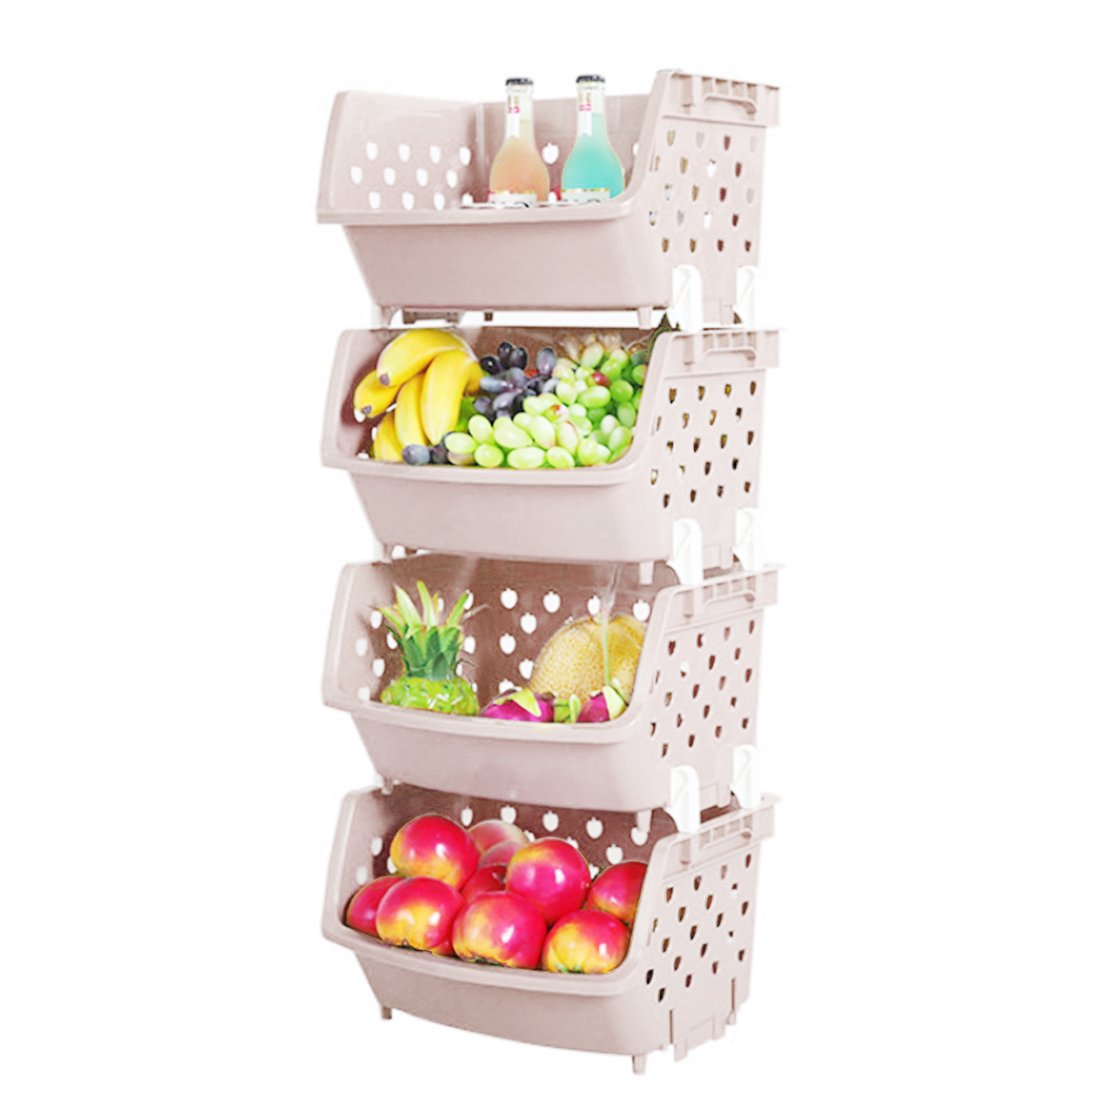 LVPY Kitchen Storage Rack,4 Tier Plastic Basket Shelving Vegetable Fruit Storage Rack Organizer,Blue